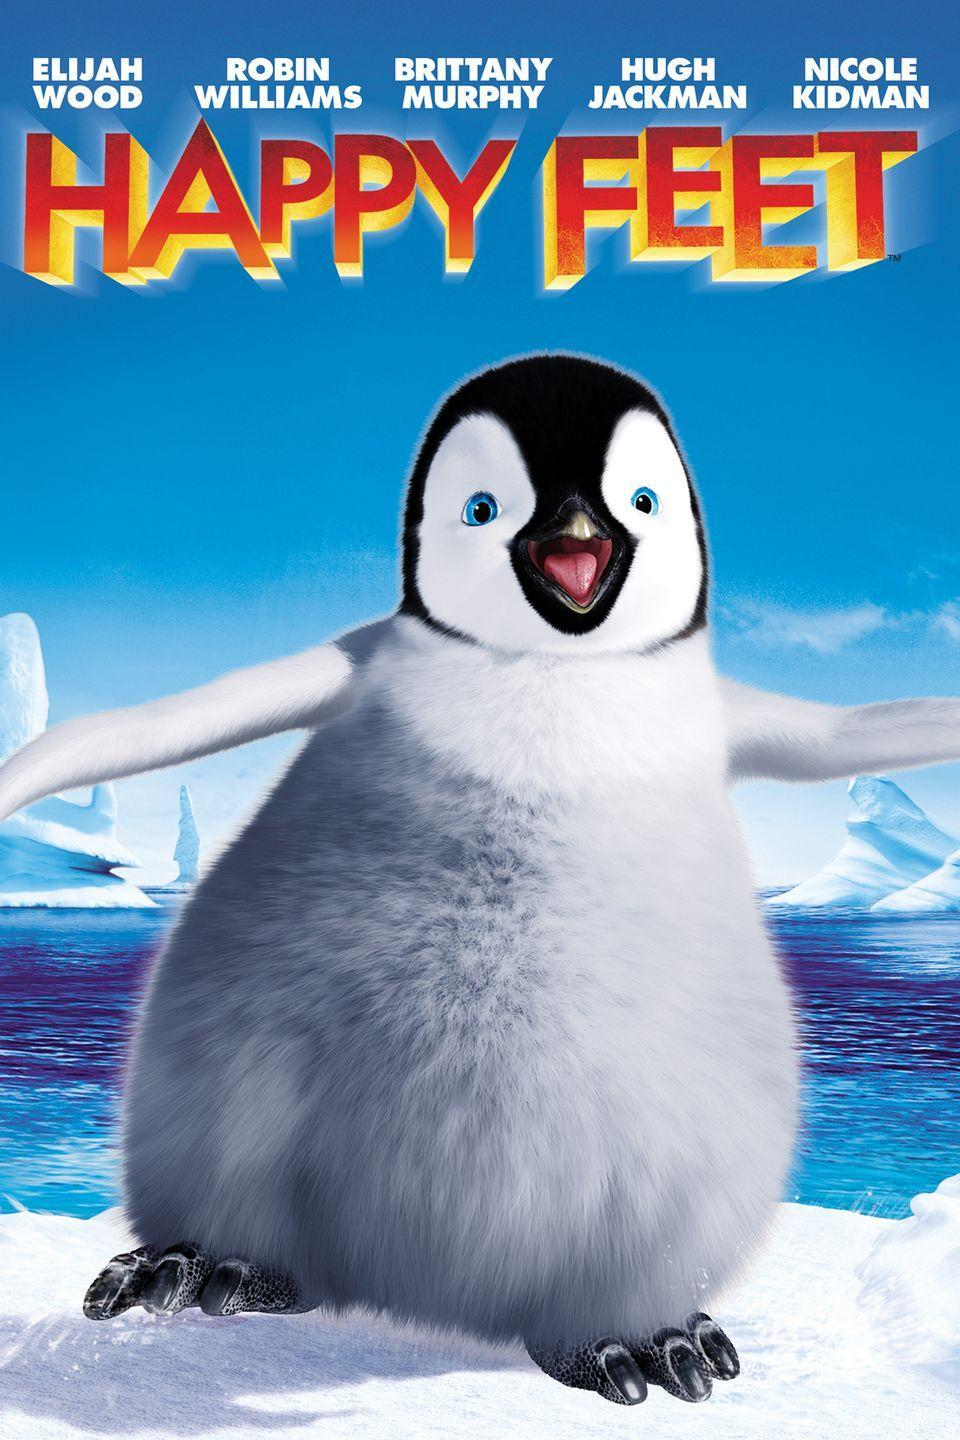 """<p>Everyone will be moving and grooving to this upbeat, animated film about dancing penguins.</p><p><a class=""""link rapid-noclick-resp"""" href=""""https://www.amazon.com/dp/B000OWAFPE?tag=syn-yahoo-20&ascsubtag=%5Bartid%7C10050.g.25336174%5Bsrc%7Cyahoo-us"""" rel=""""nofollow noopener"""" target=""""_blank"""" data-ylk=""""slk:WATCH NOW"""">WATCH NOW</a></p>"""